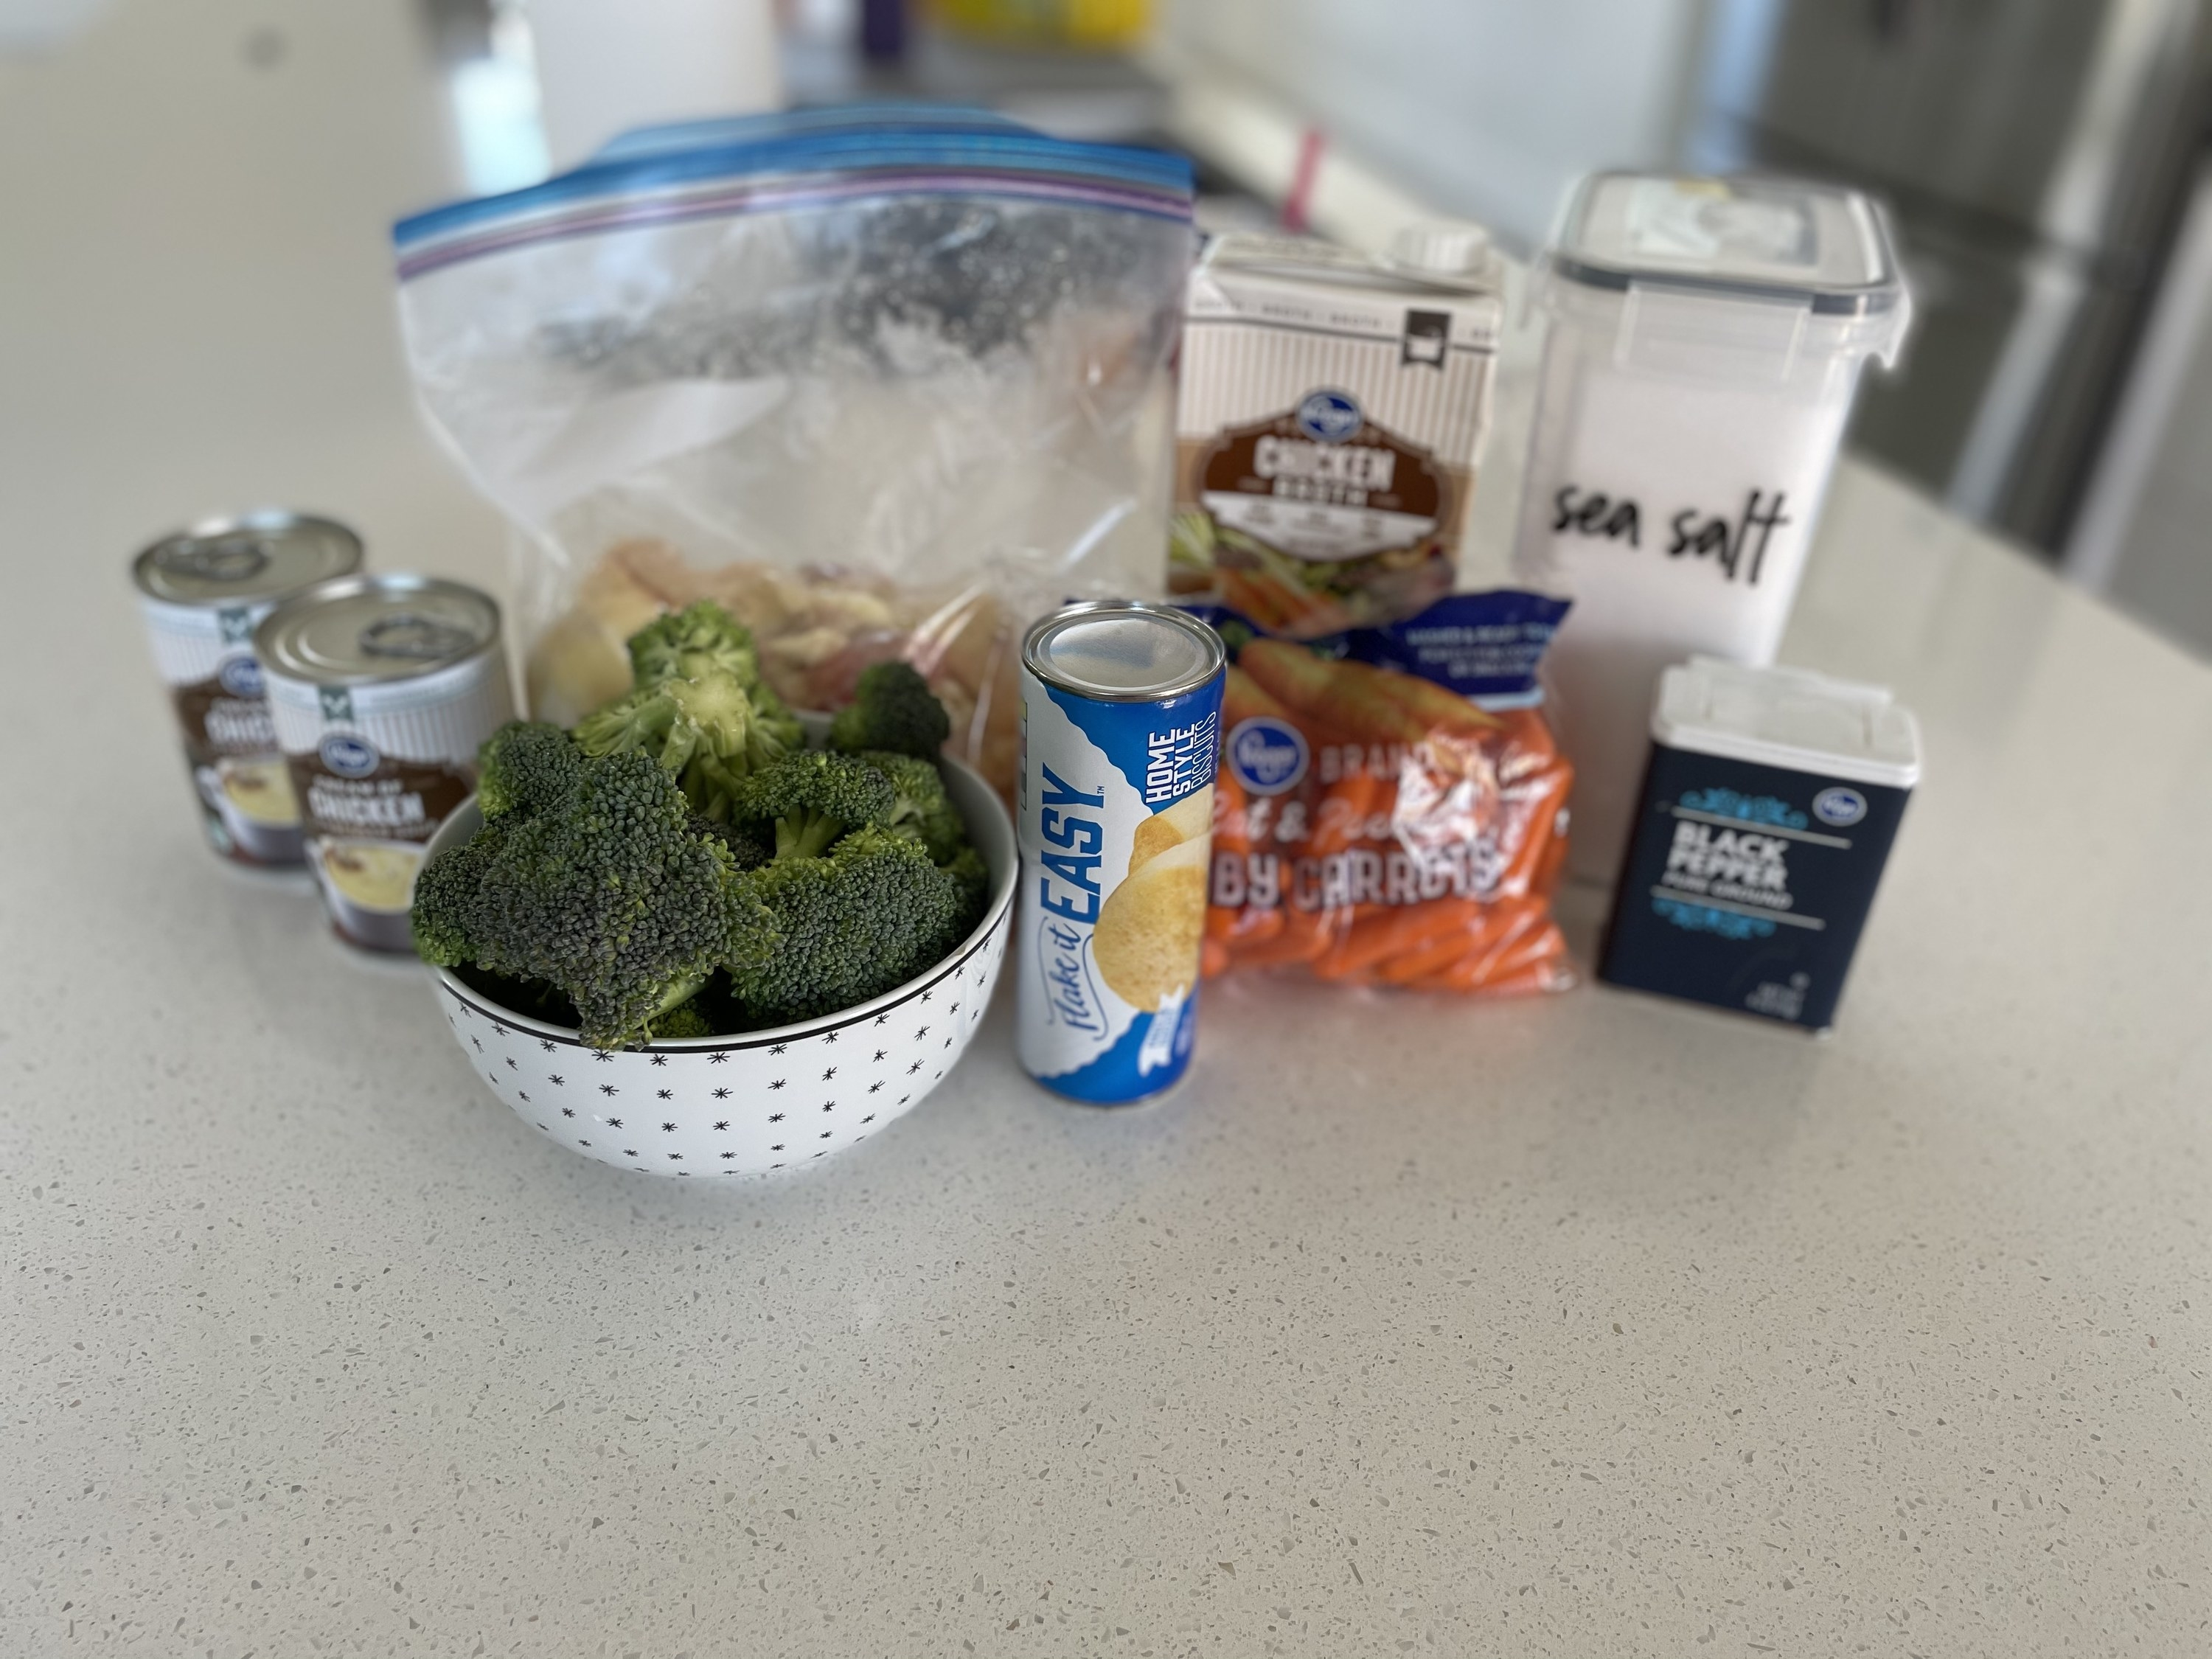 Ingredients for slow cooker chicken and biscuits